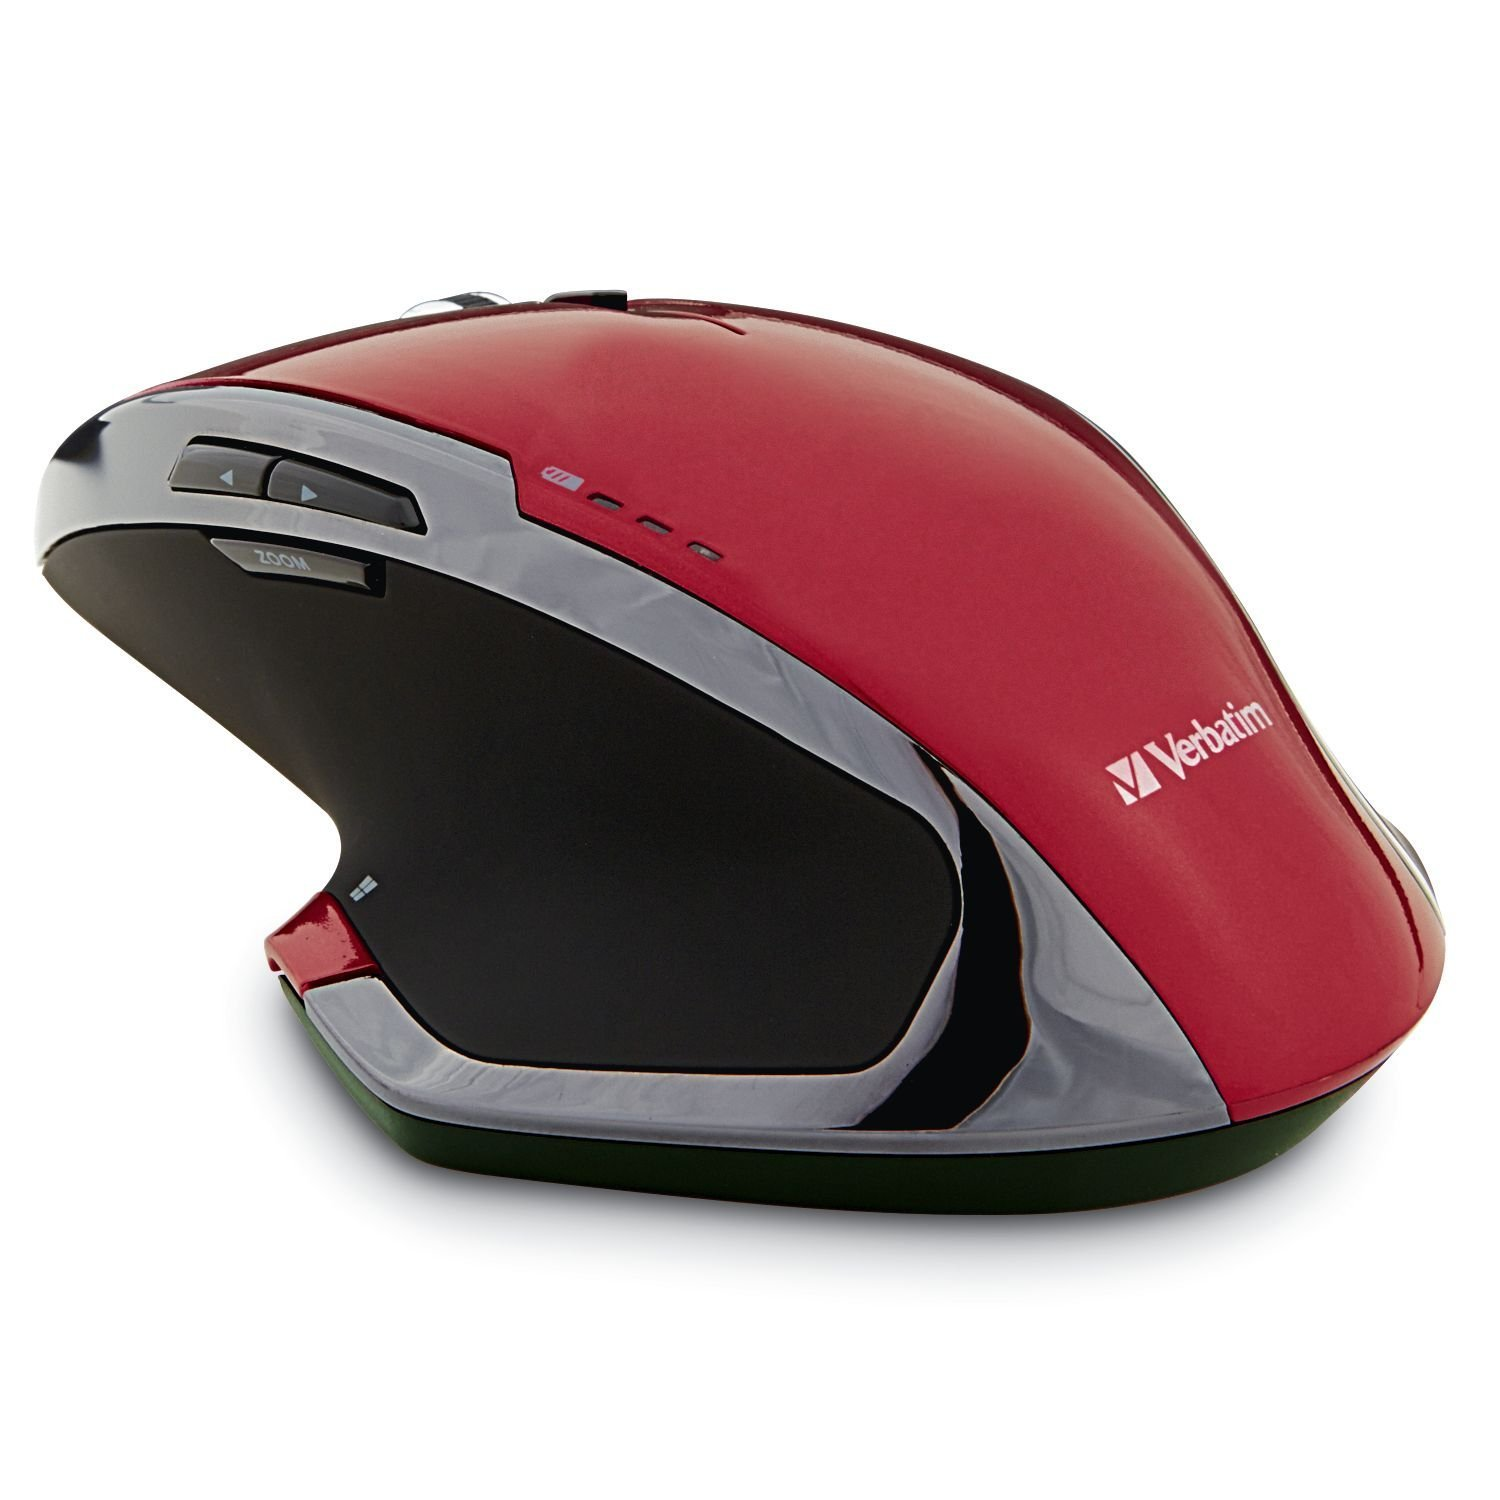 Mouse Wireless, Red 8-button Gaming Portable Led Usb Wireless Mouse